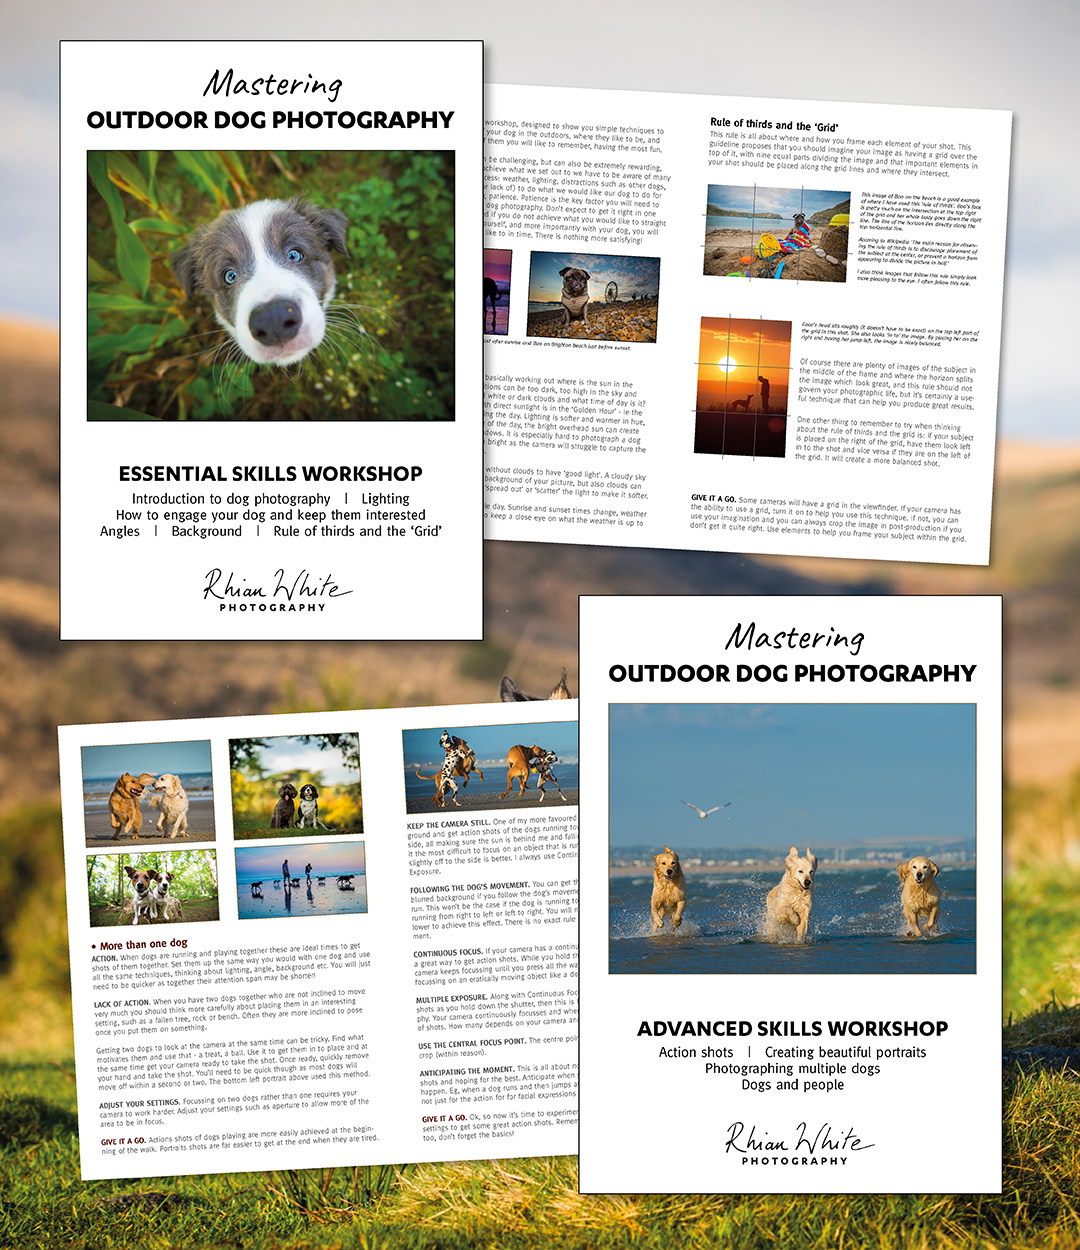 """Guides included - You will receive two 8-page booklets containing all the information from the workshop, so you don't need to take notes. You will also receive a tech sheet with settings. PLUS you get exclusive access to my new private Facebook group for people who have done the 1-1 with me """"Mastering outdoor dog photography"""" where you can share images, get feedback, talk to others who love dog photography too and get ongoing feedback and help from myself."""